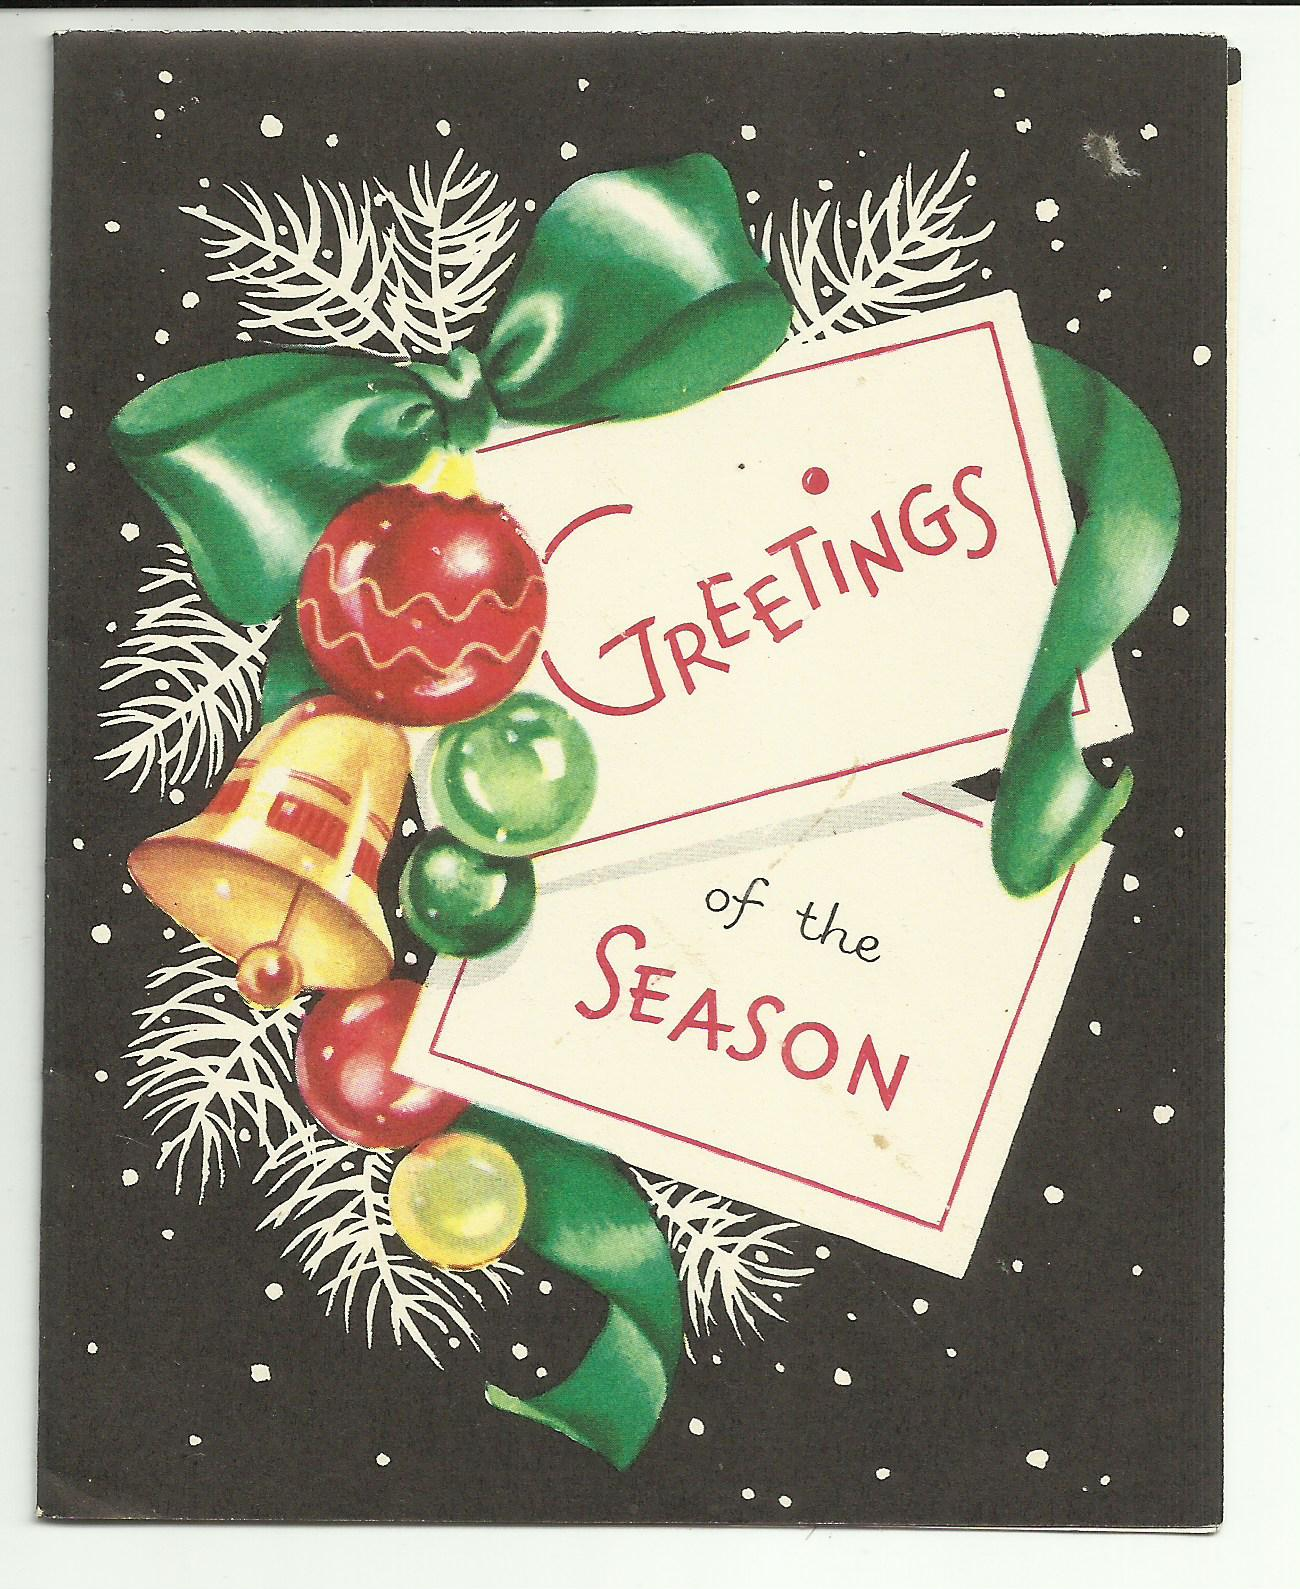 unused vintage greetings of the season bright colors on black christmas card envelope